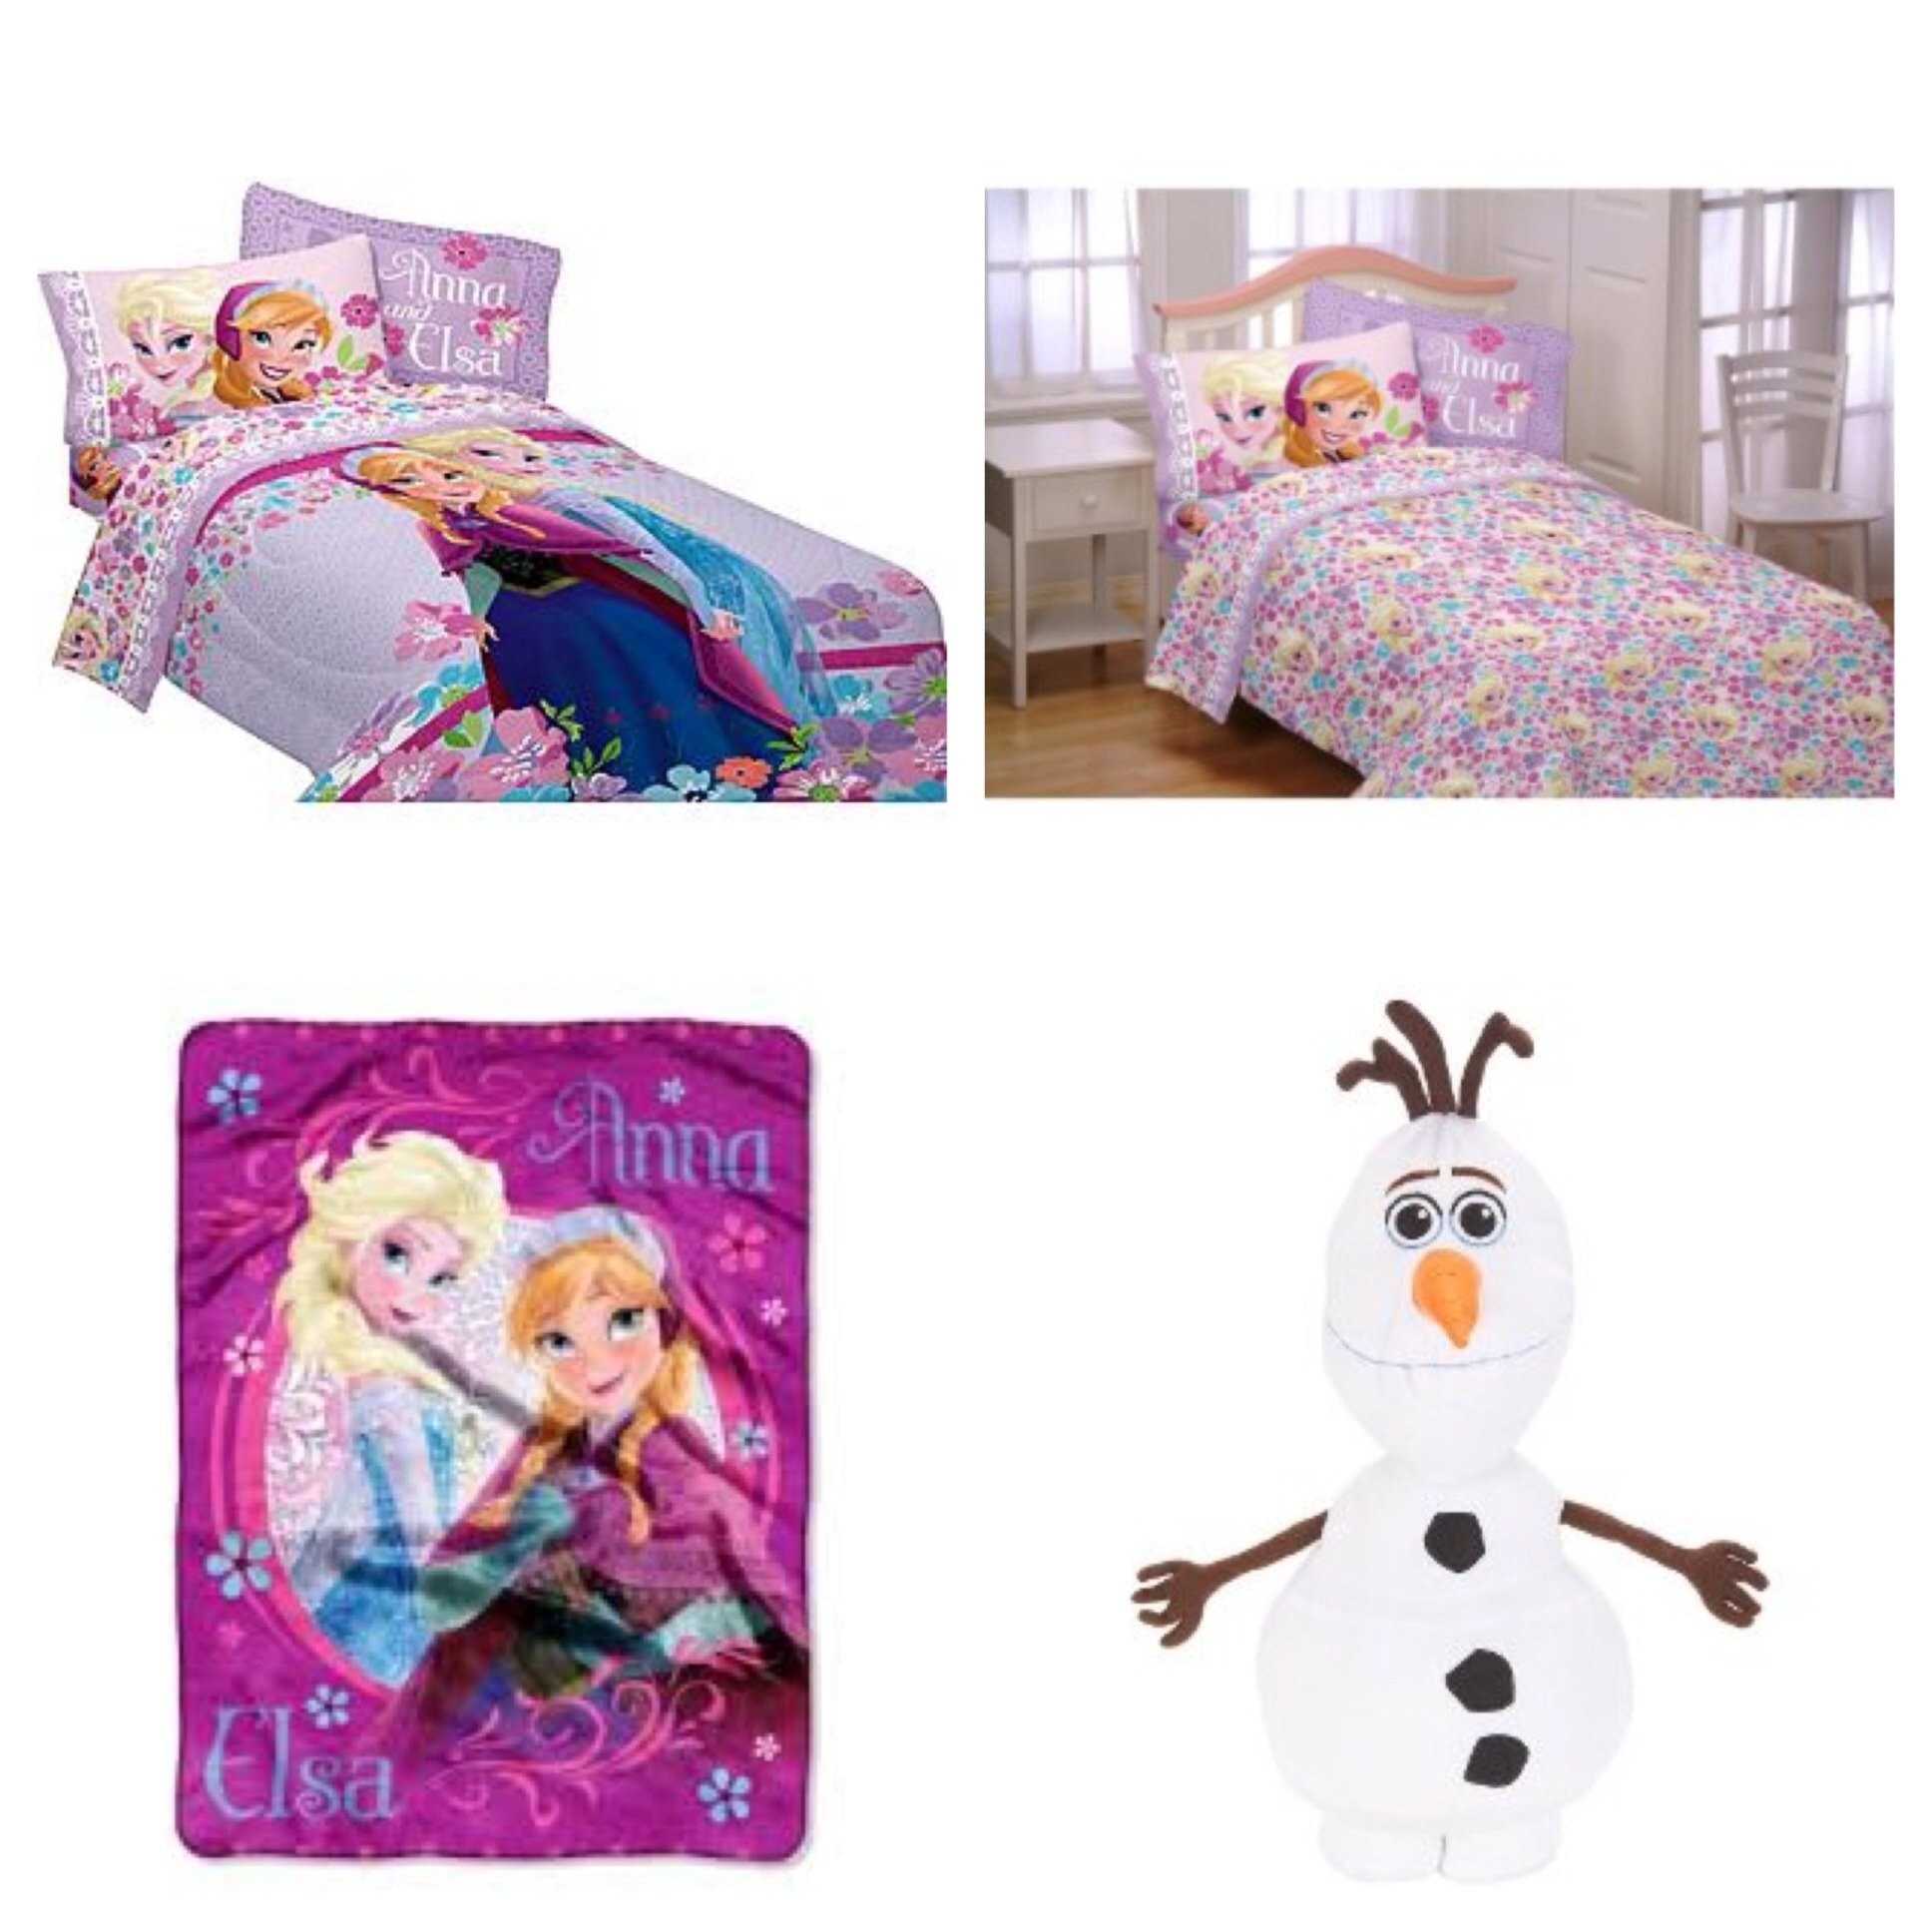 Disney Frozen Love Blooms Complete 6 Piece Twin Bed in a Bag - Comforter, 3 Piece Sheet Set, Loving Sisters Throw, Olaf Cuddle Pillow by Disney (Image #1)